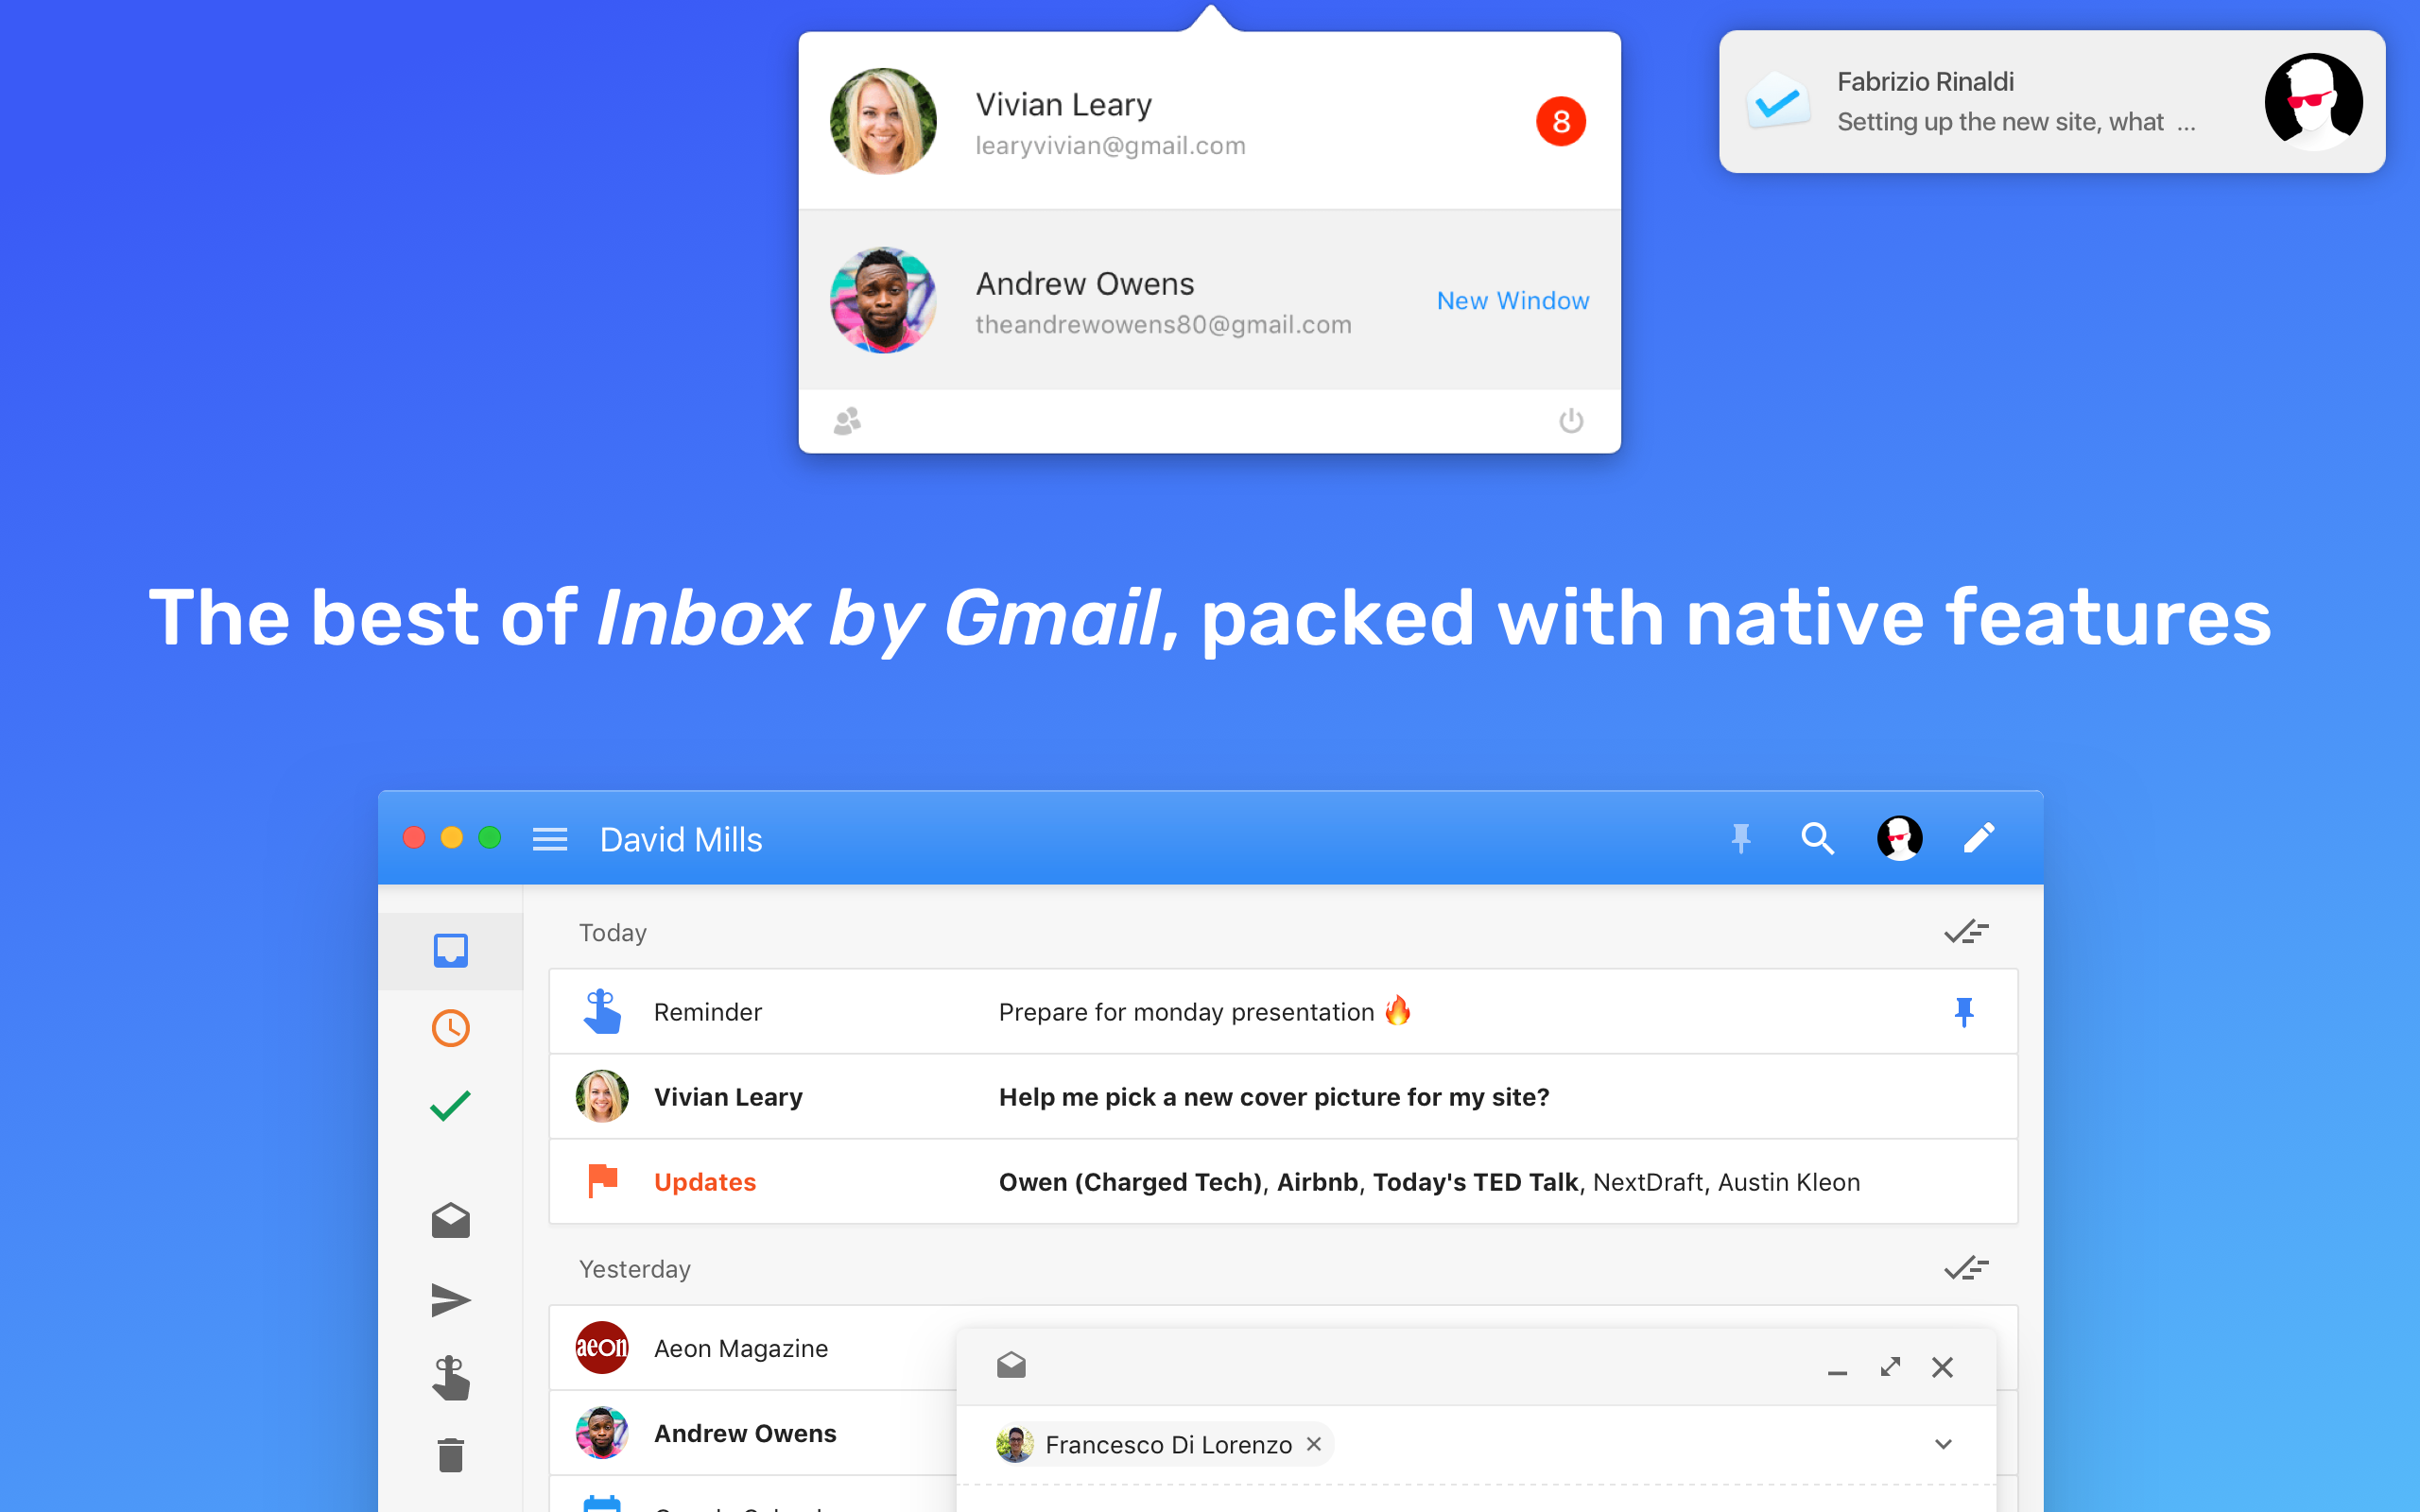 The best of Inbox by Gmail, packed with native features.